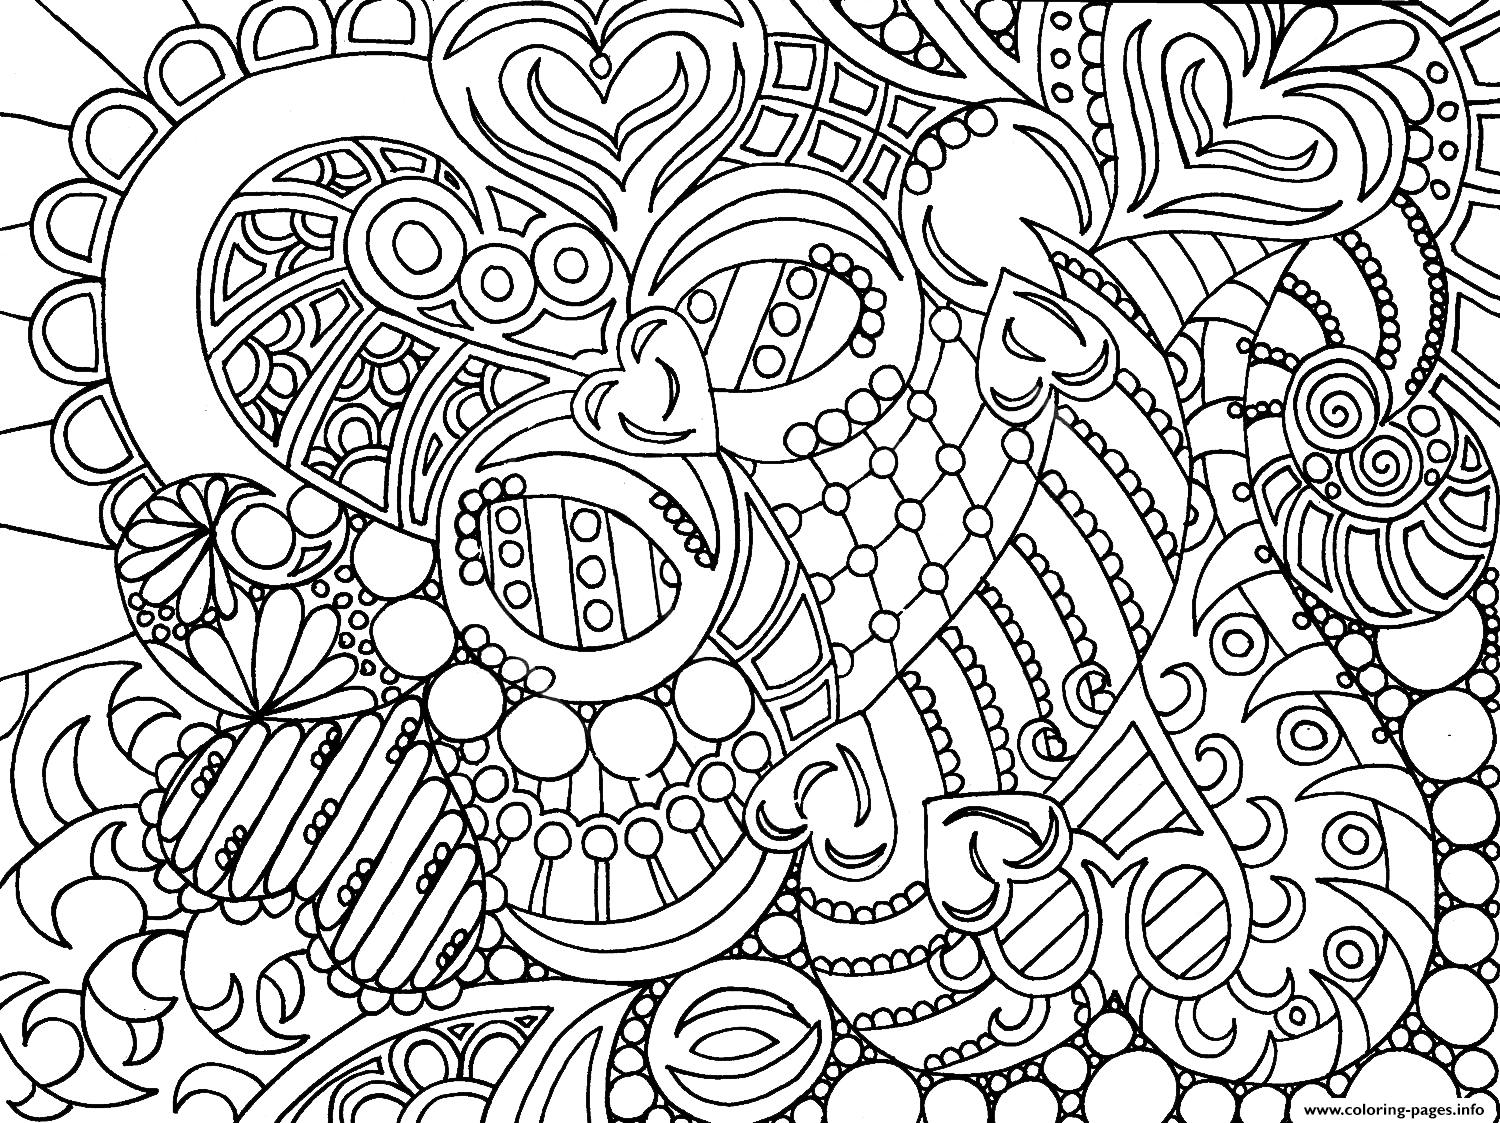 awesome coloring sheets very cool colouring for adult coloring pages printable awesome coloring sheets